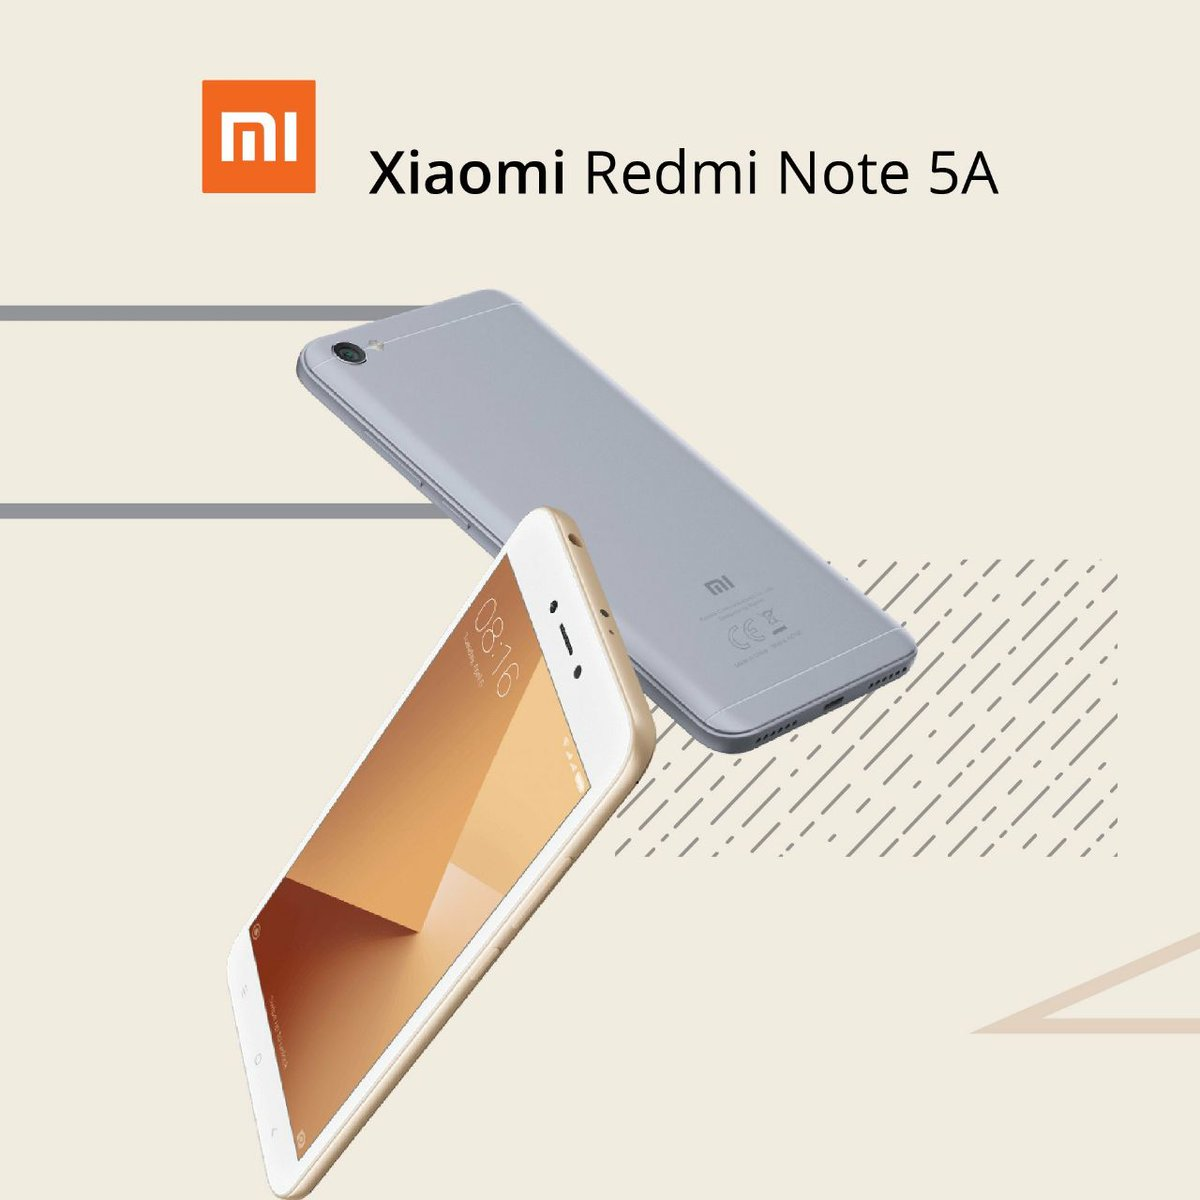 Queen Of Airwaves On Twitter Probably You Have Seen Me Post Abt Touchscreen Xiaomi Redmi 5a Note Smartphone Was Launched In August 2017 The Phone Comes With A 550 Inch Display Resolution 720 Pixels By 1280